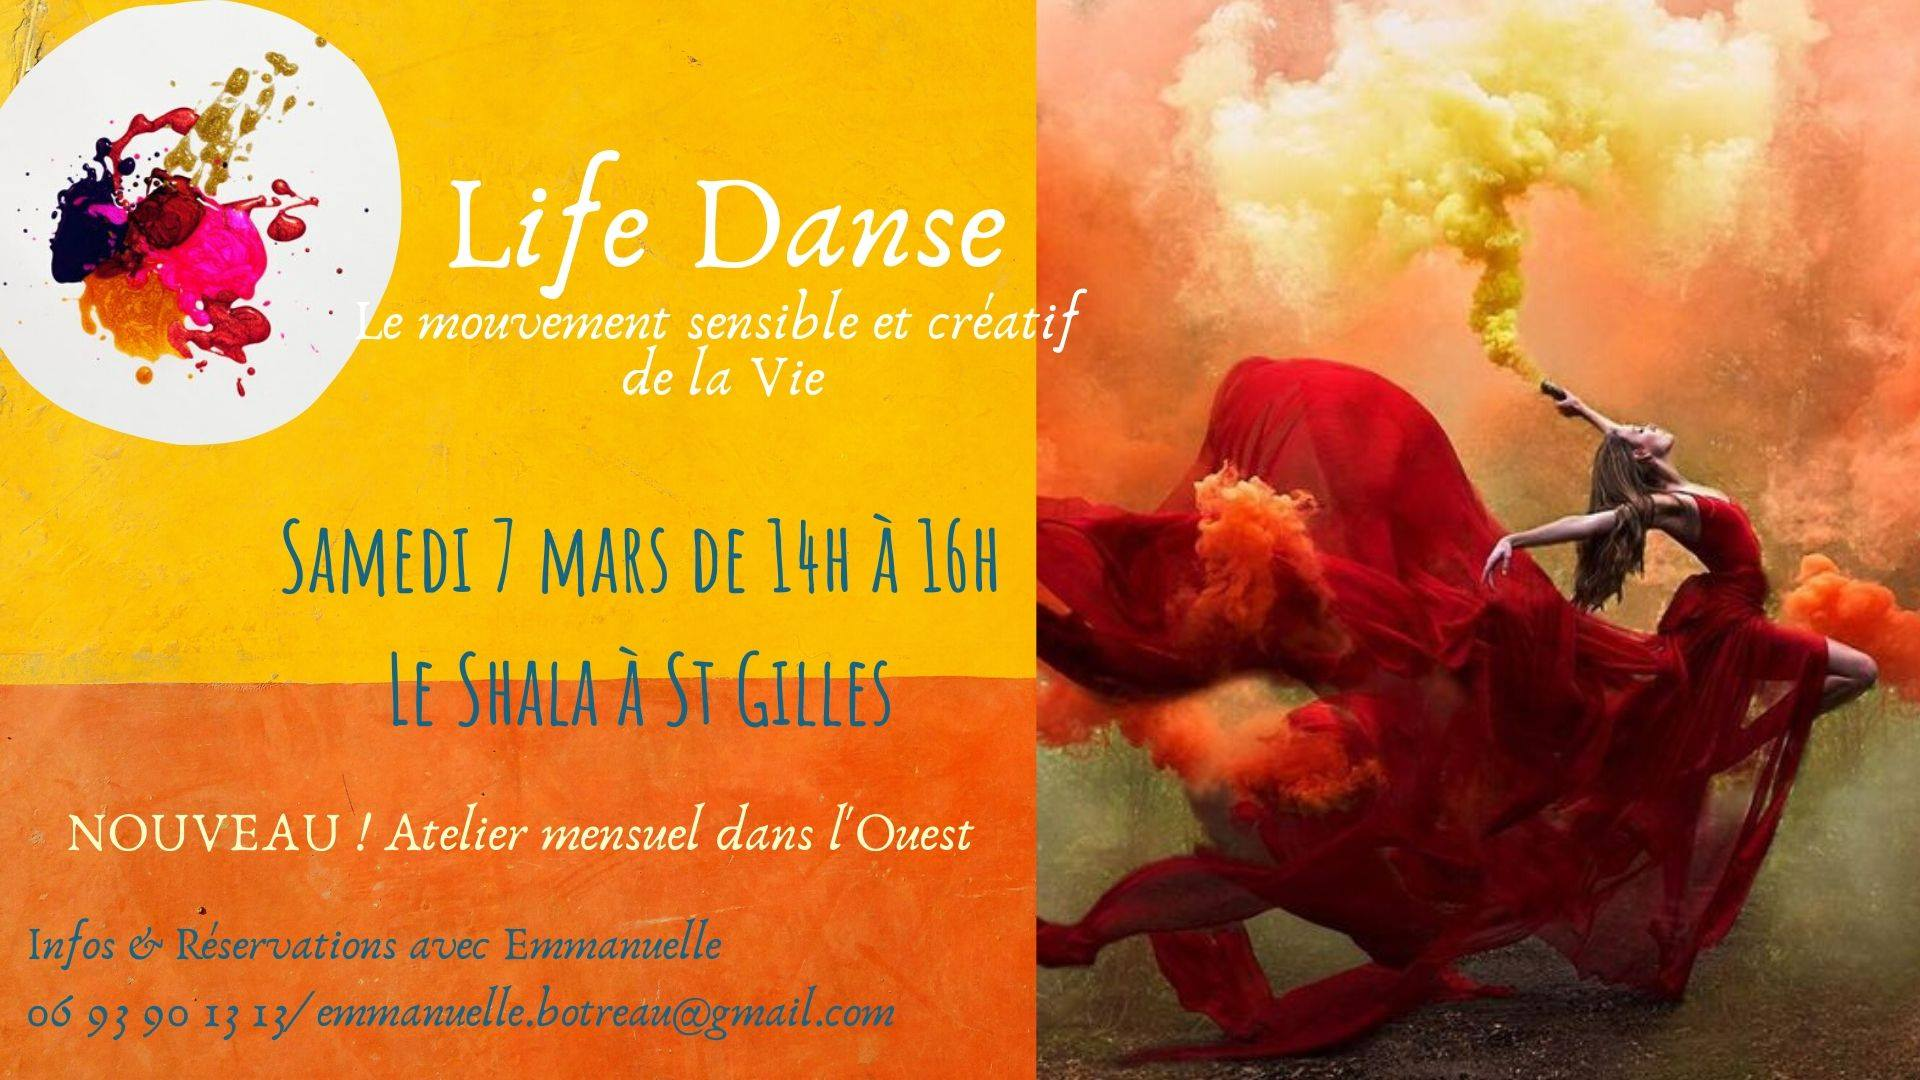 LIFEDANSE_OUEST